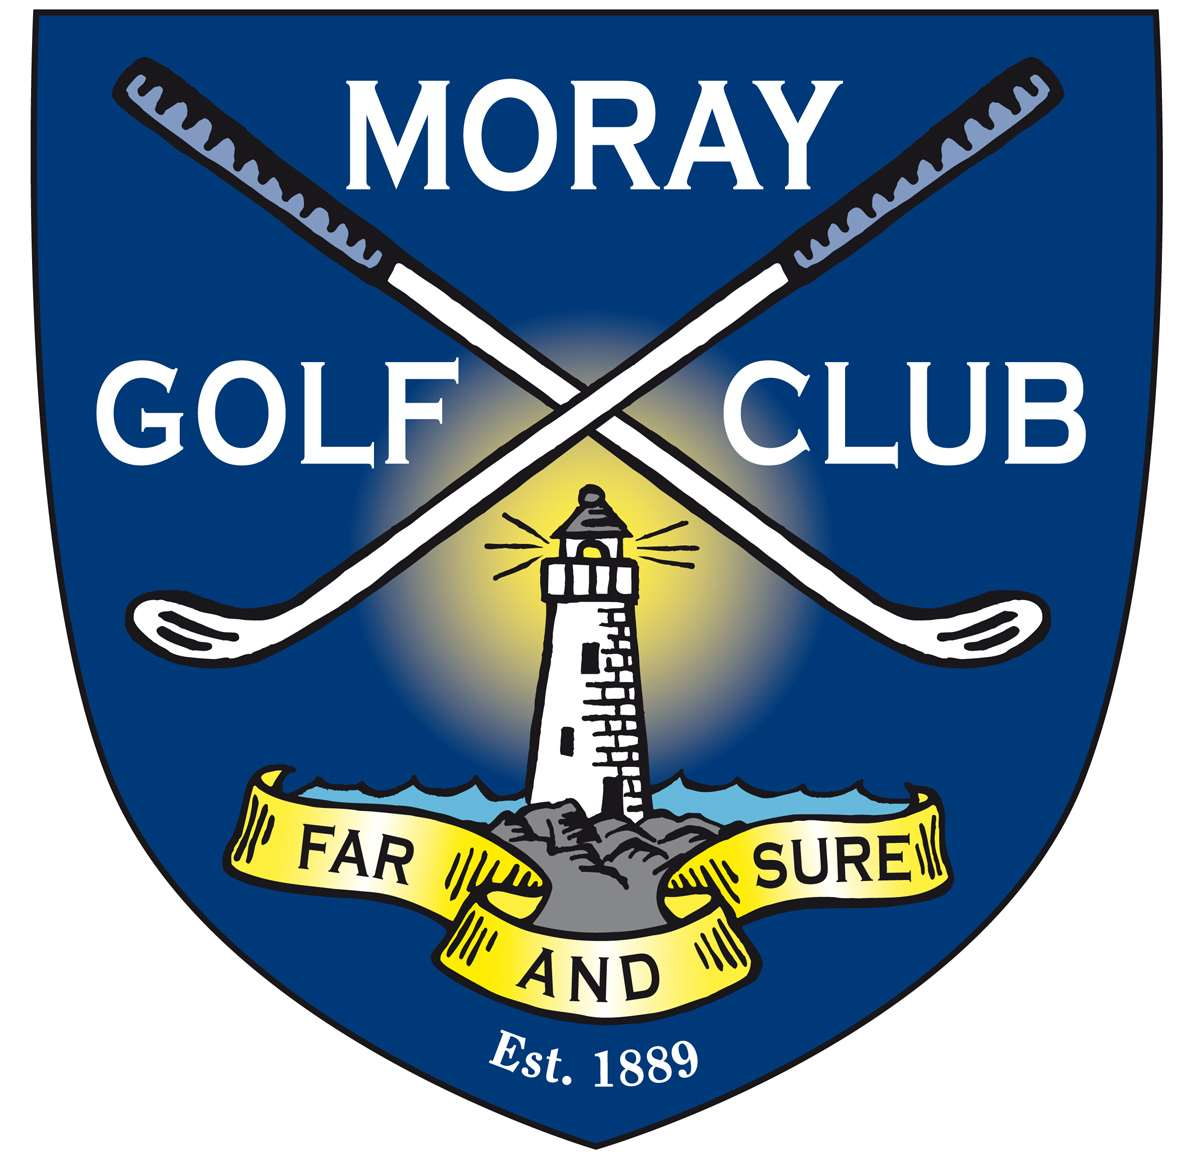 Moray Golf Club